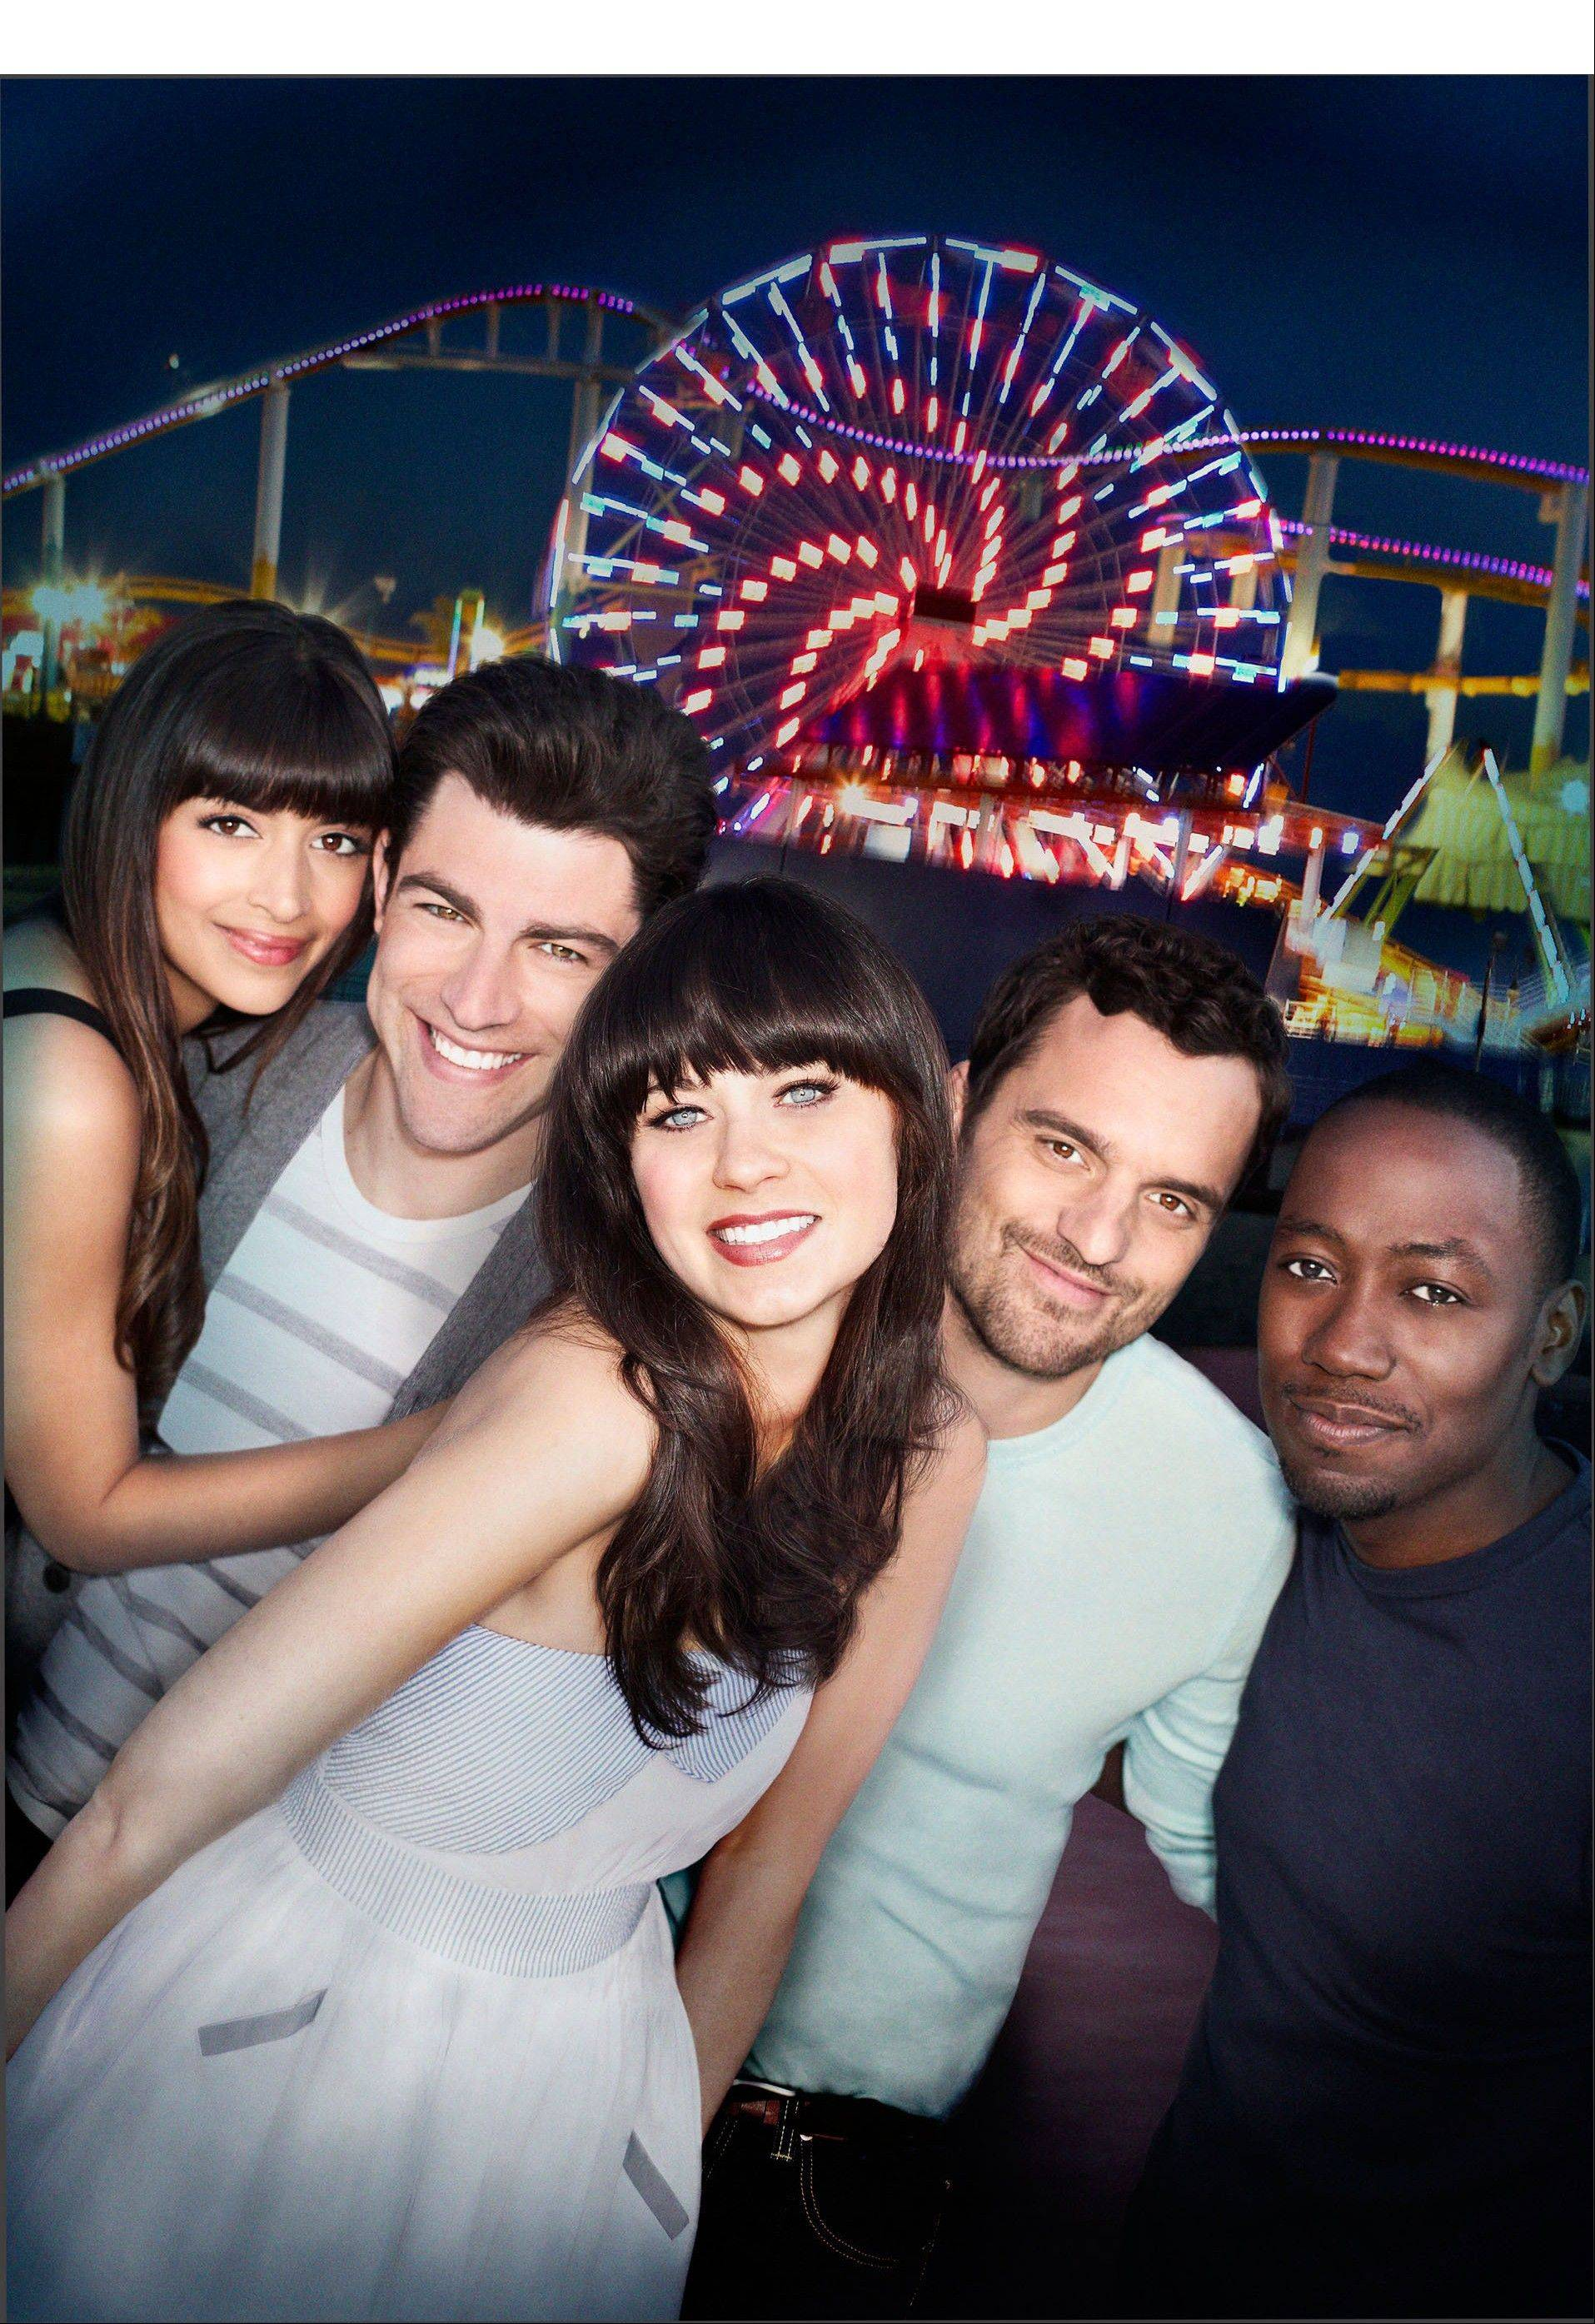 "Netflix Inc., signed an exclusive multiyear deal with Twentieth Century Fox Television to stream past seasons of ""New Girl"" to its U.S. online members."